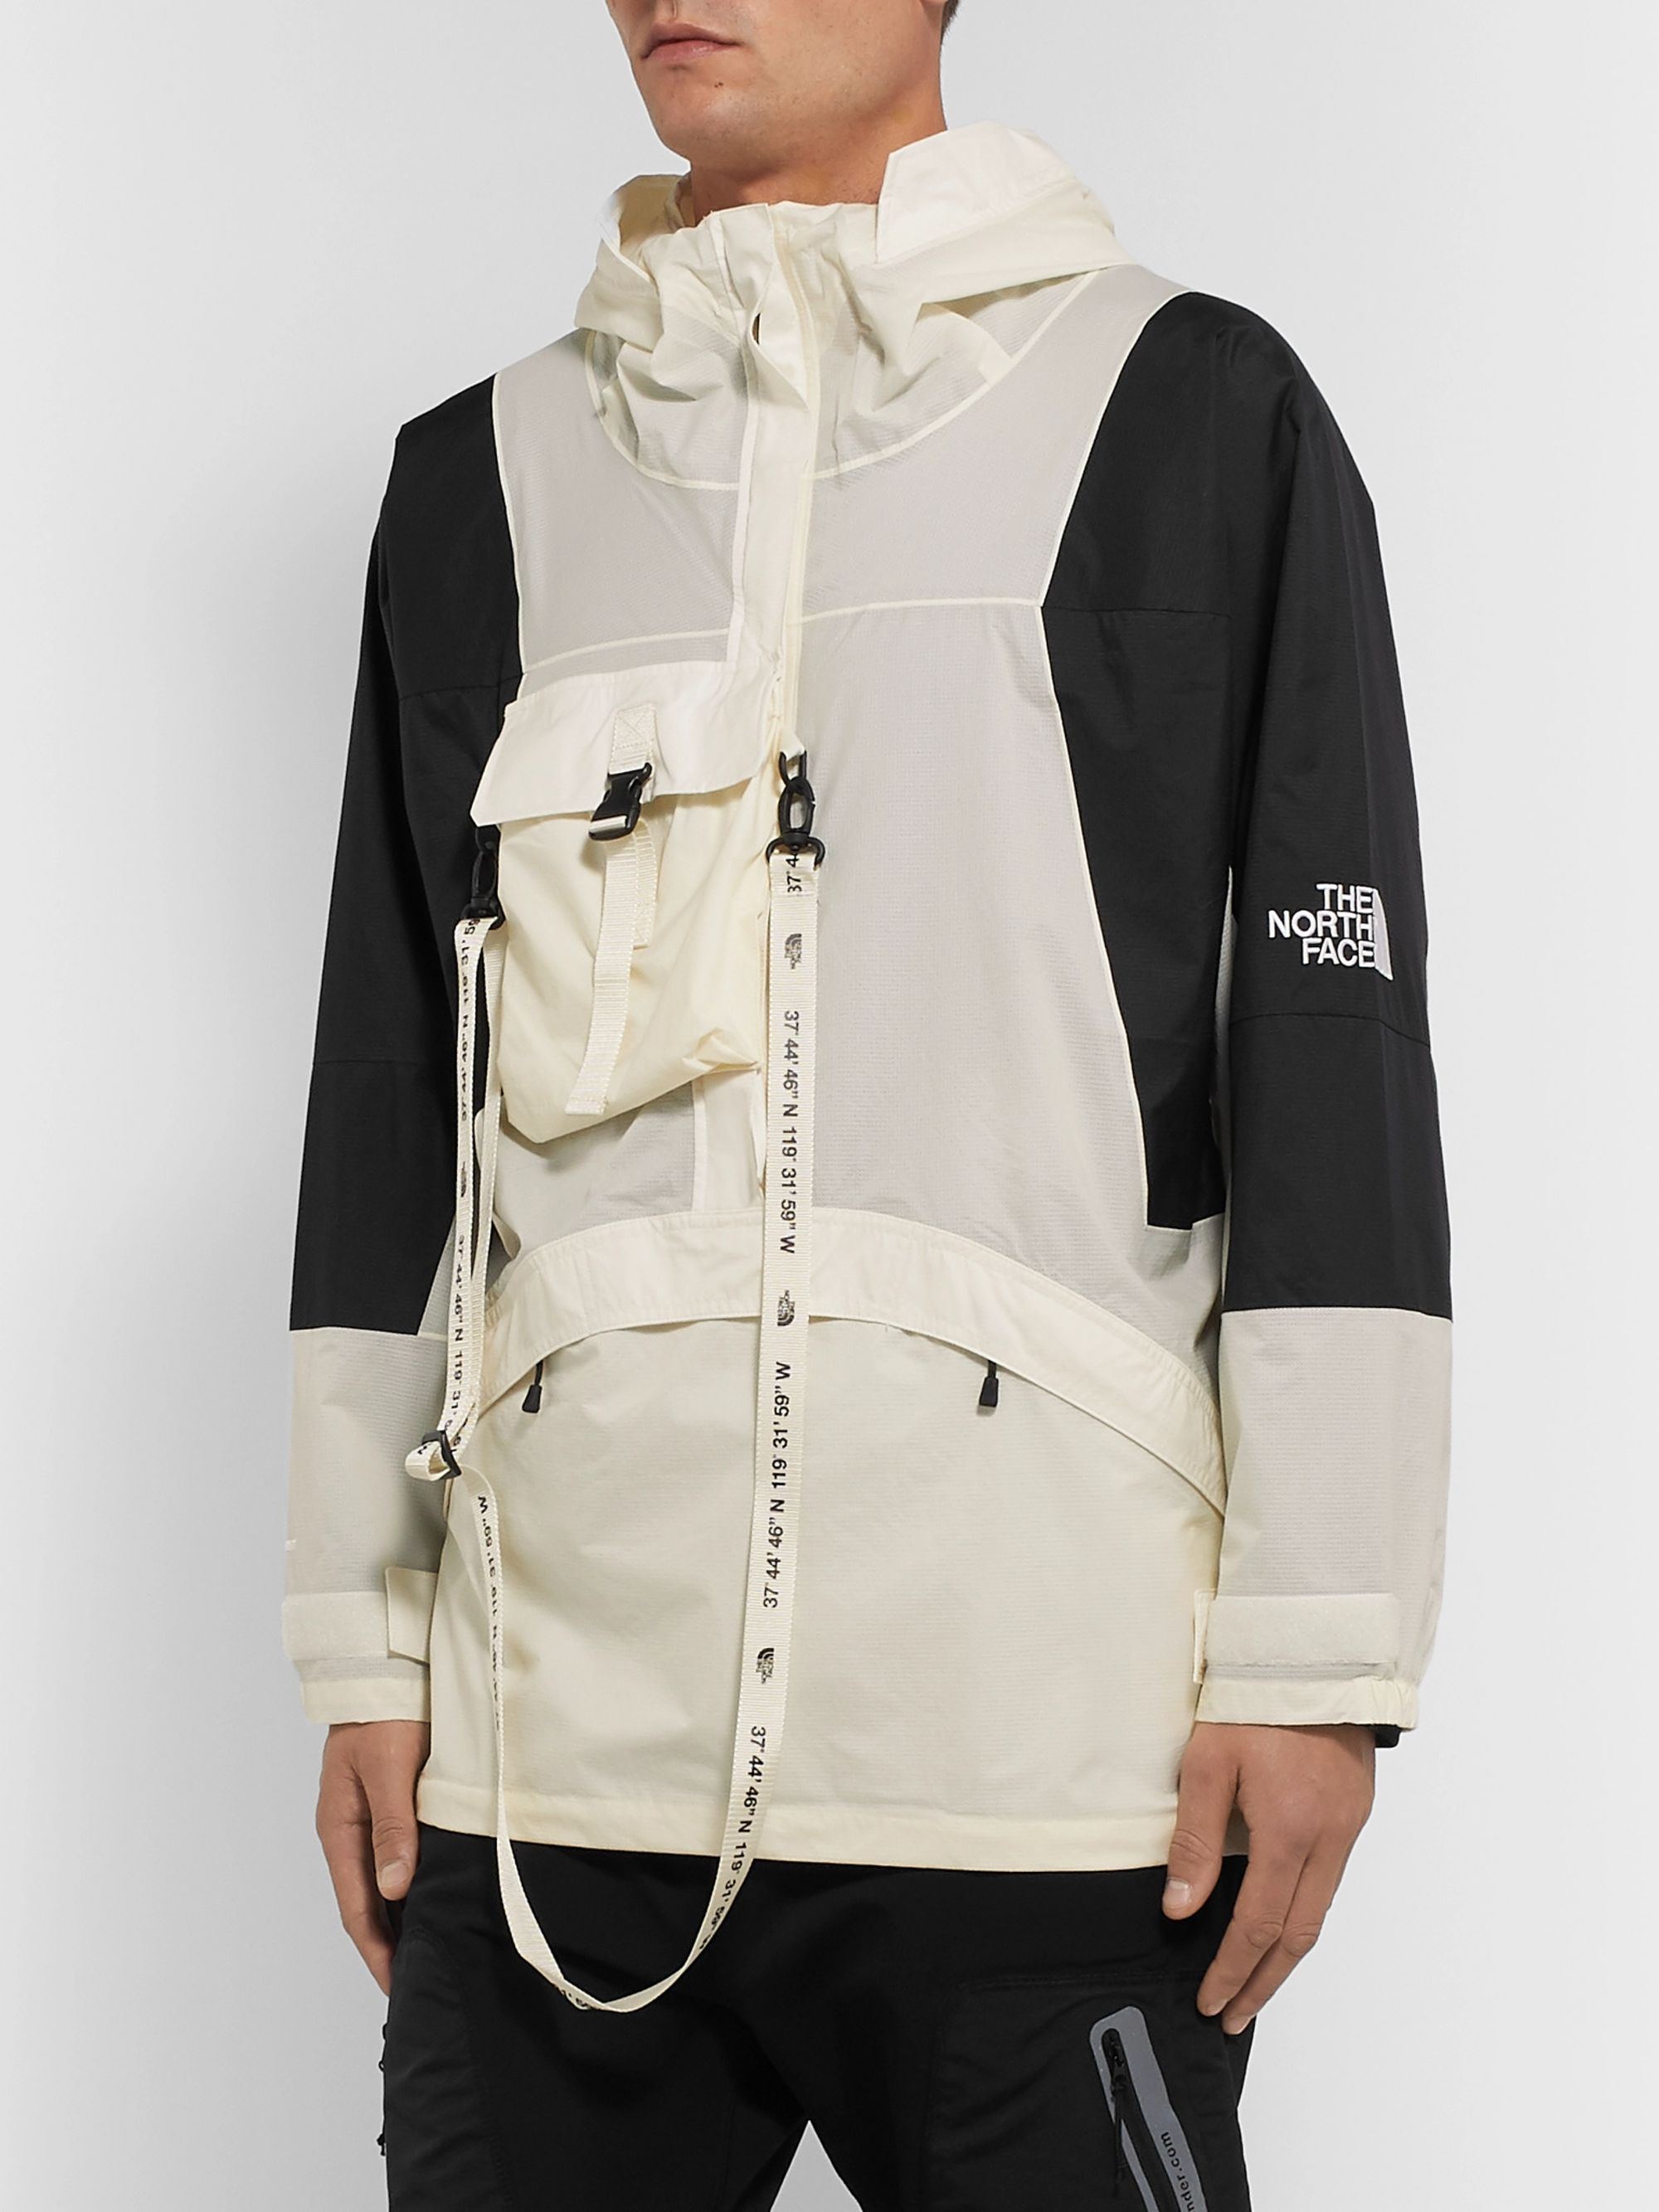 The North Face Black Series KK Webbing-Trimmed Shell Hooded Jacket